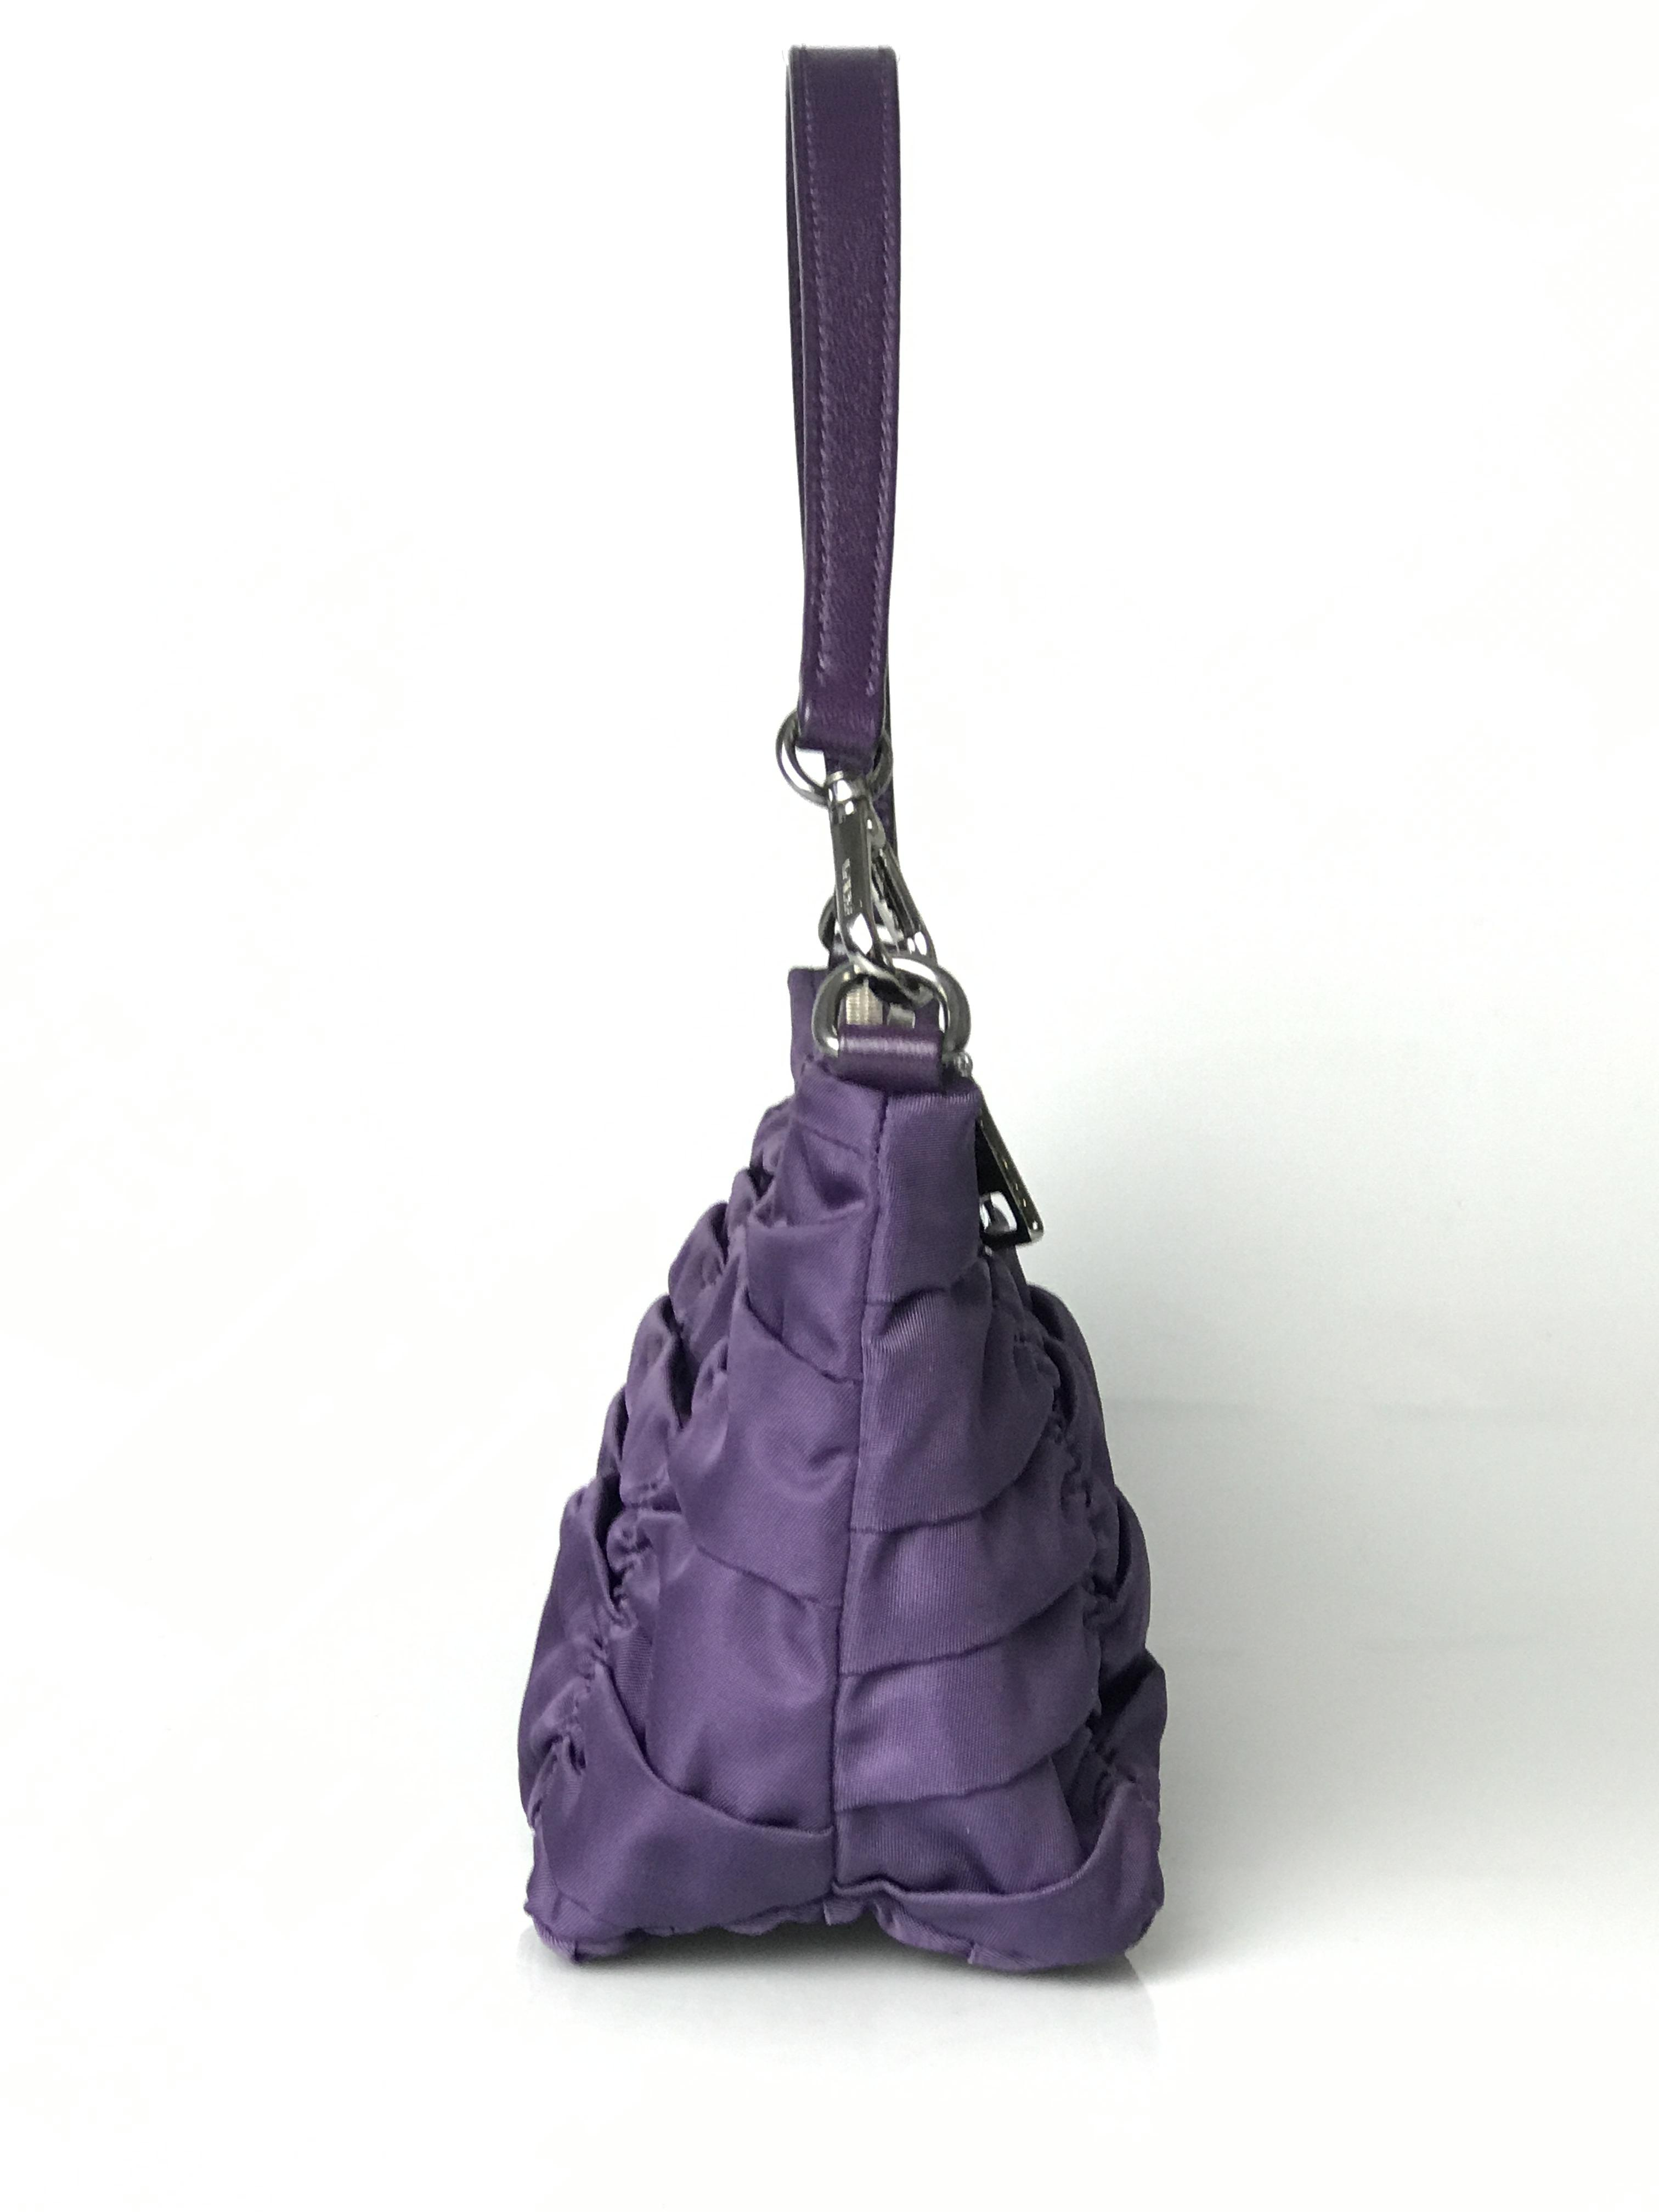 c9202b6ff2c5 ... wholesale prada tessuto gaufre mini shoulder purple nylon leather hobo  bag tradesy 56495 978c7